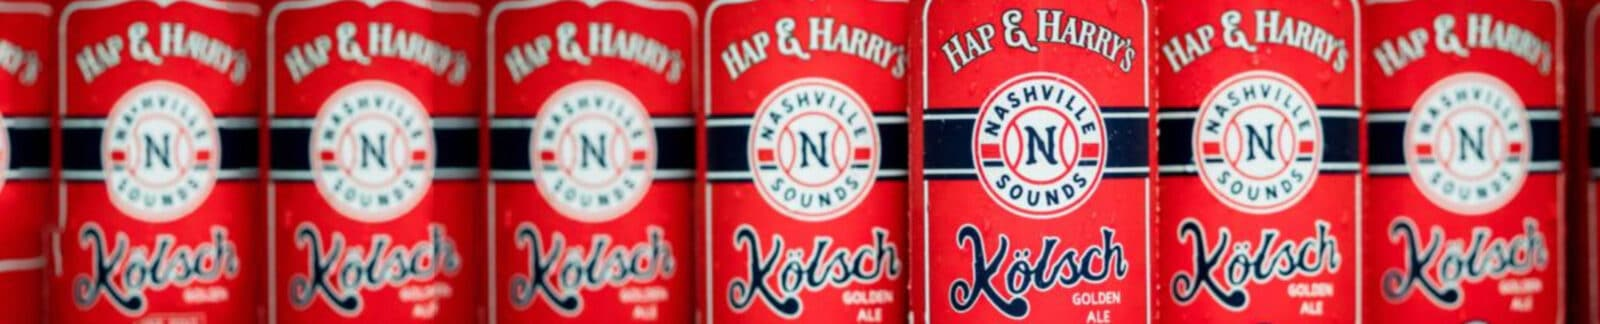 Hap & Harry's Nashville Sounds Kolsch header